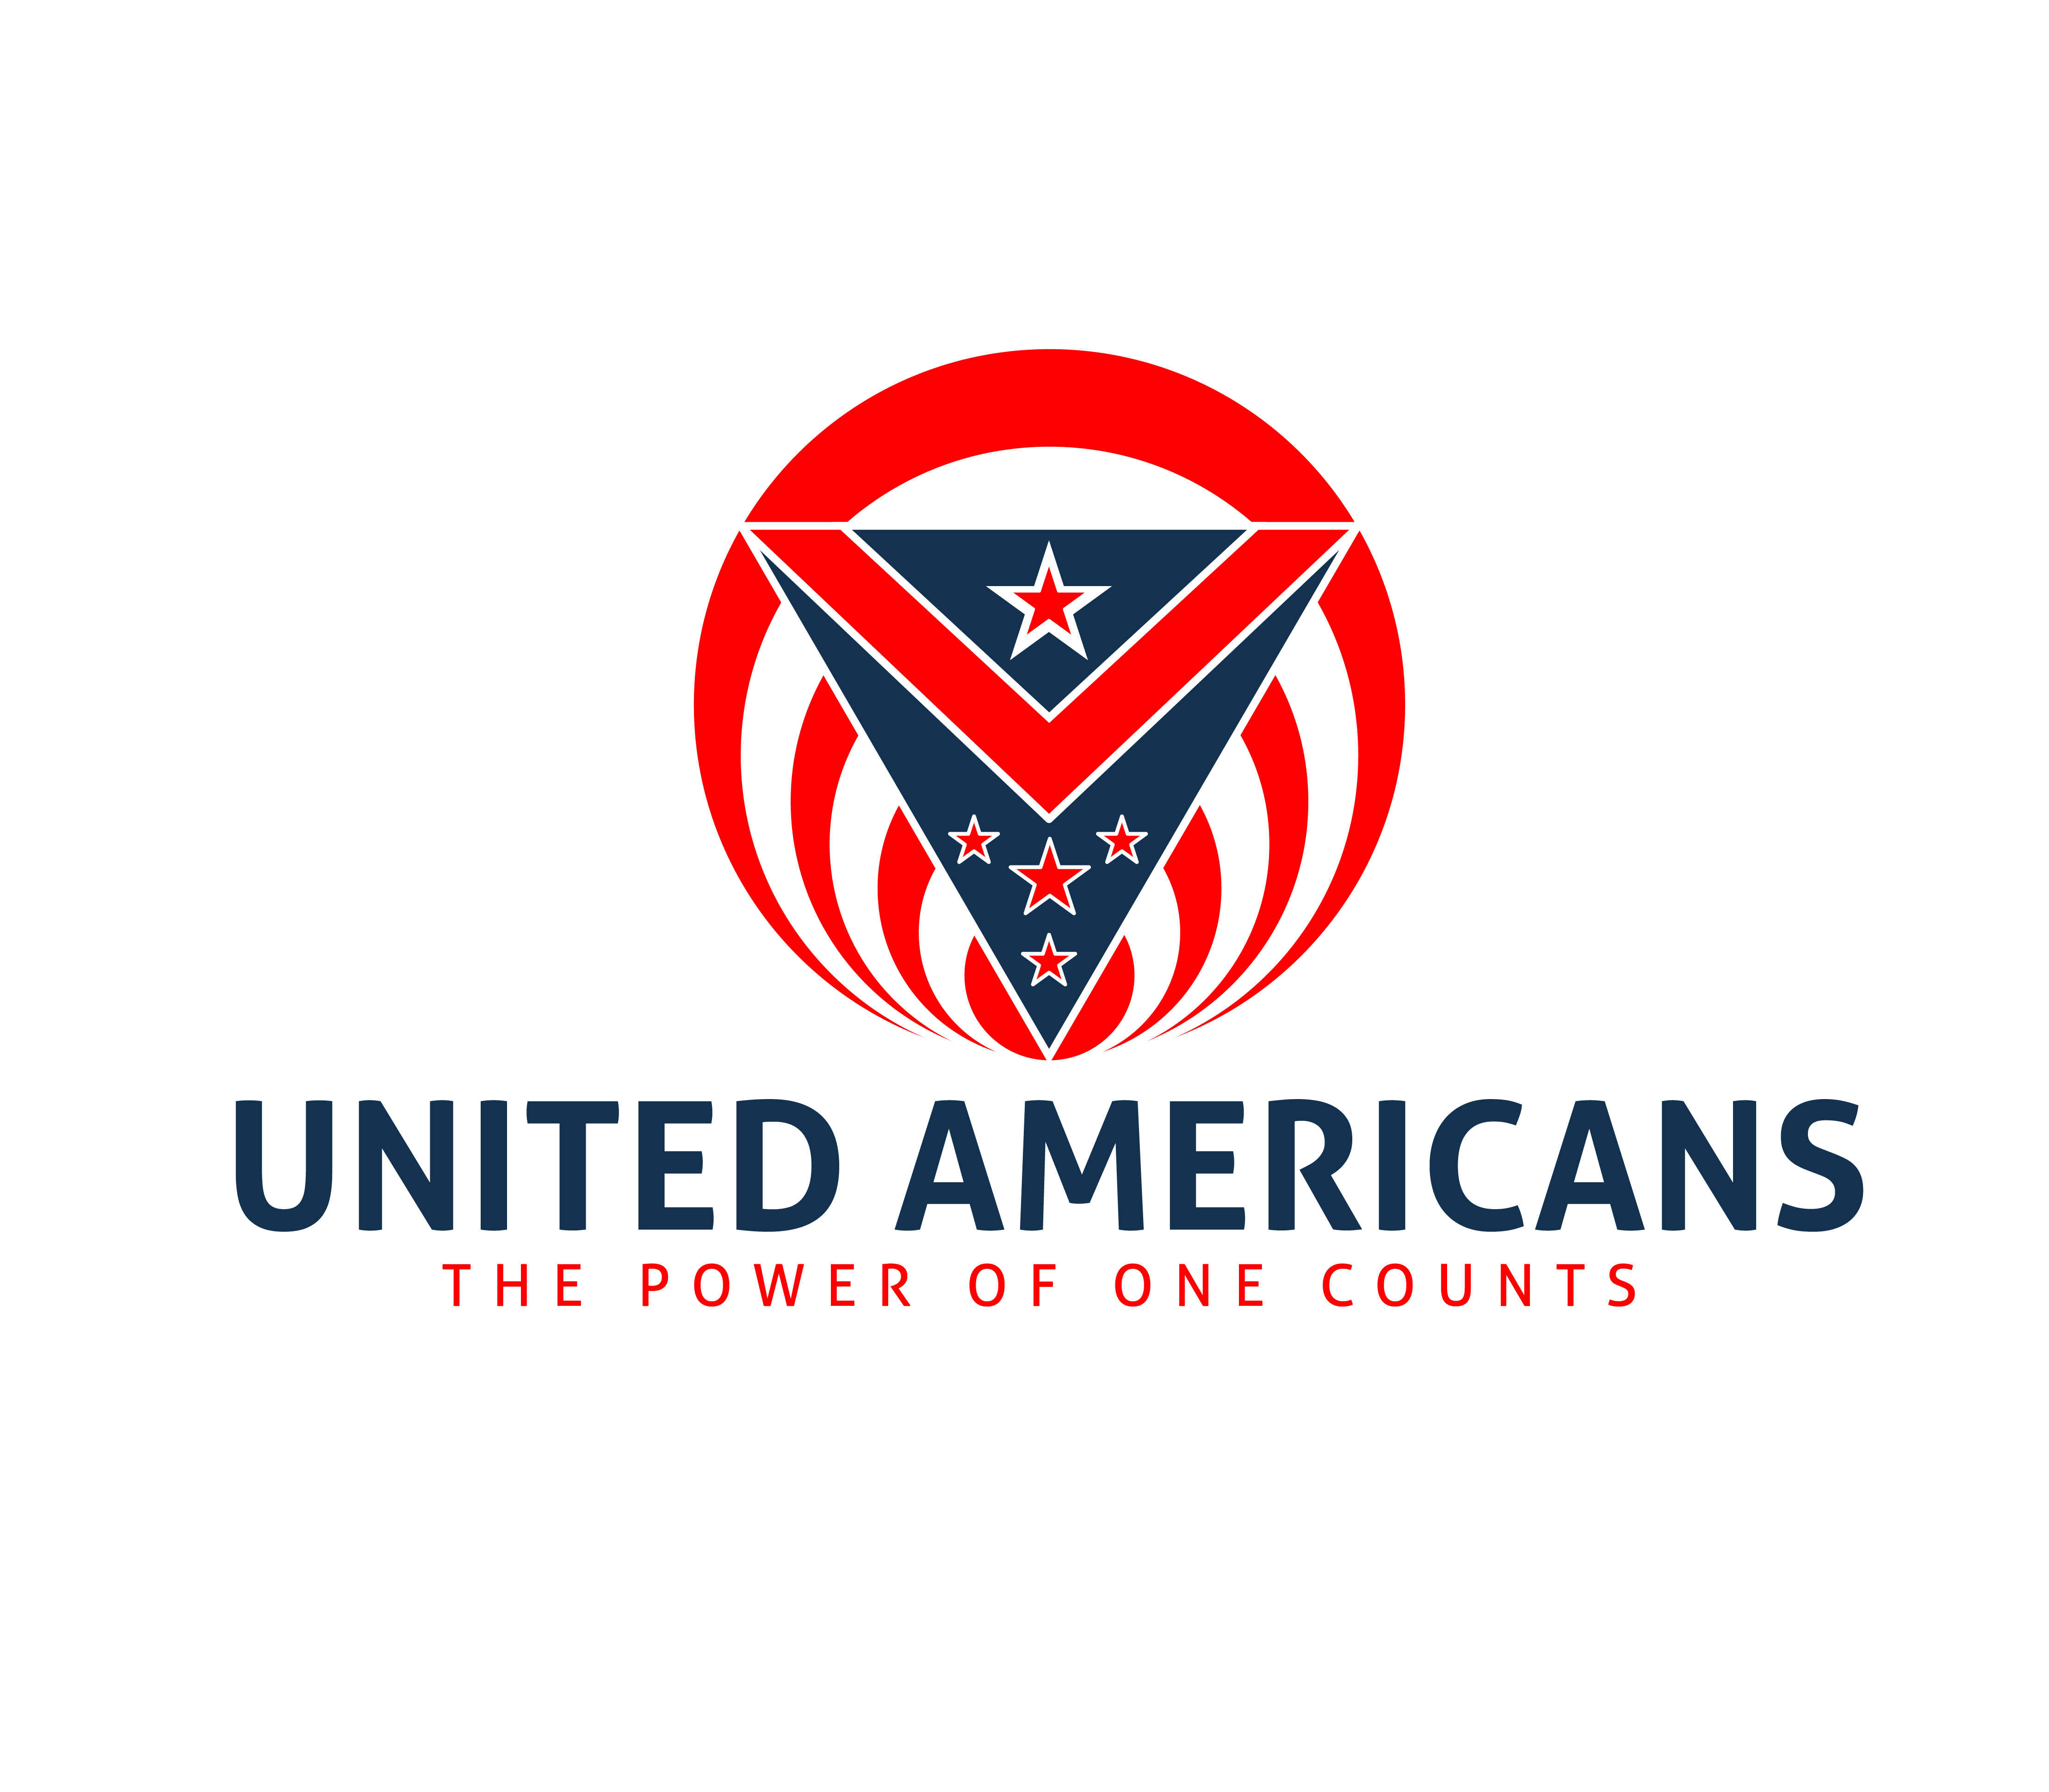 Logo Design by 3draw - Entry No. 123 in the Logo Design Contest Creative Logo Design for United Americans.